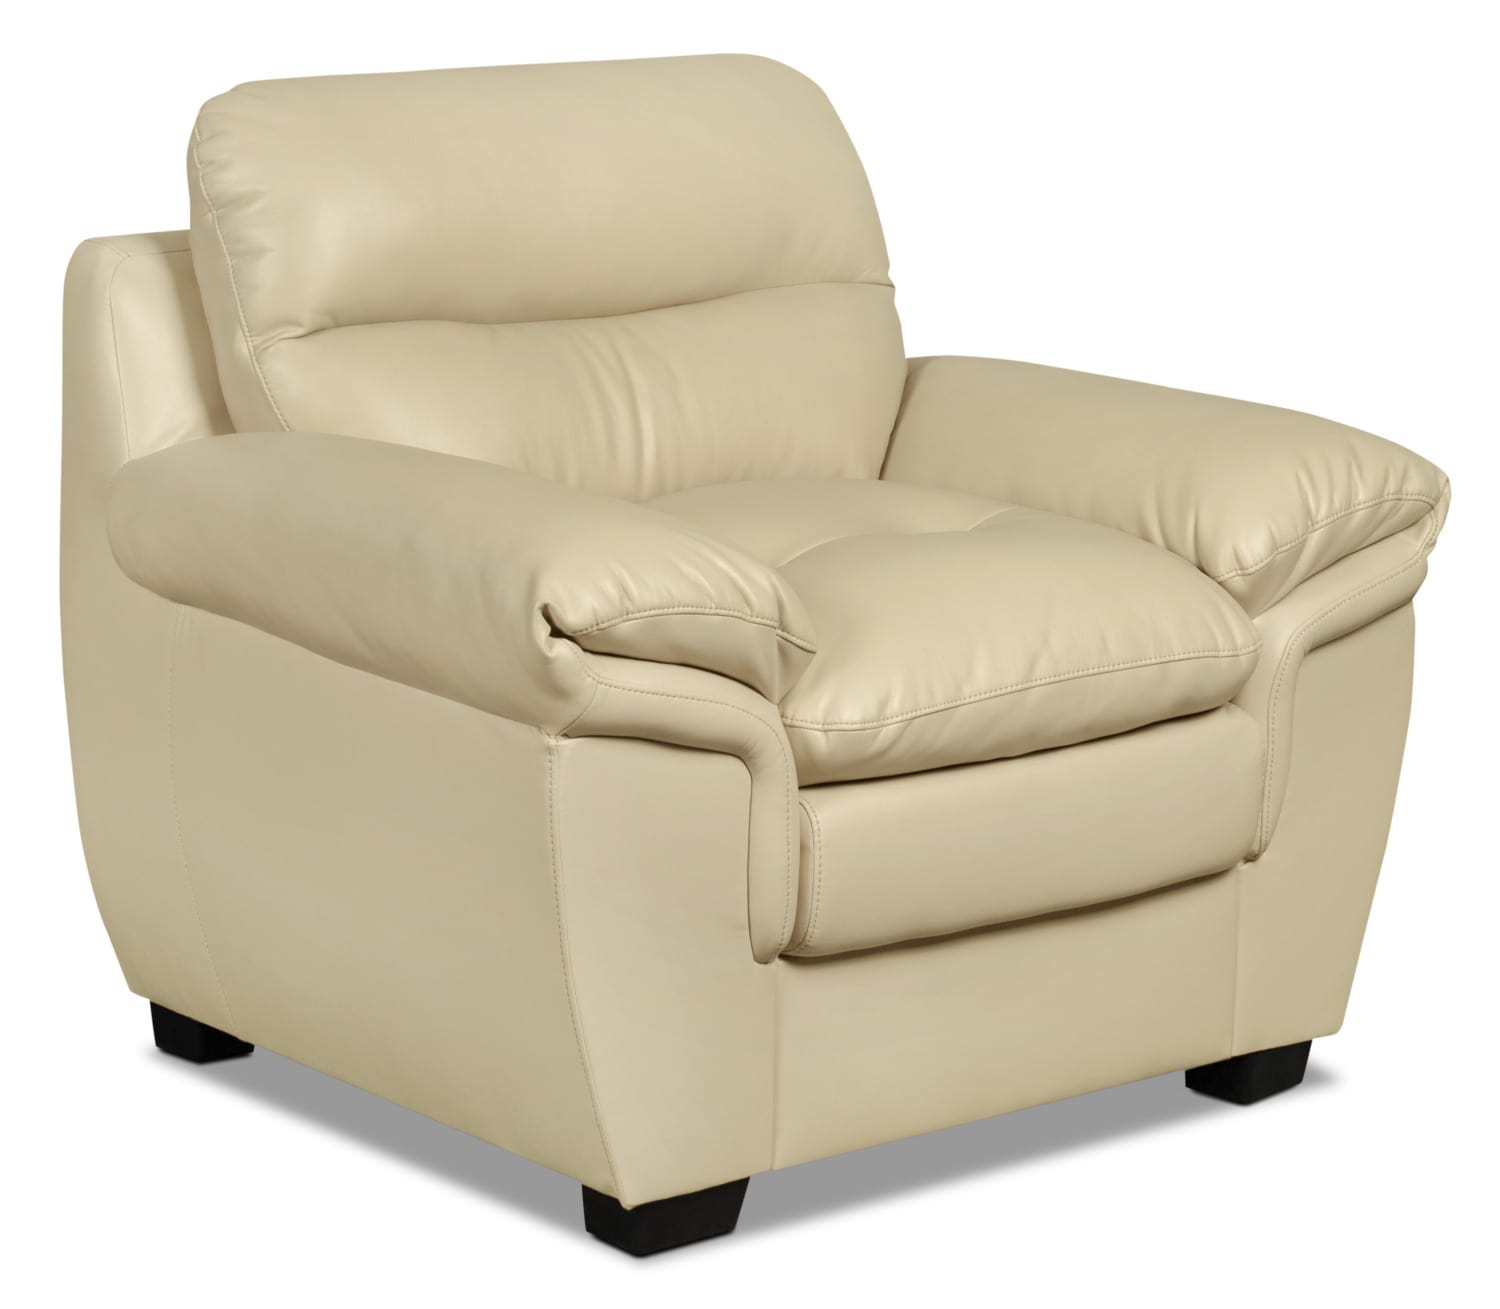 Bryon Leather-Look Fabric Chair – Cream